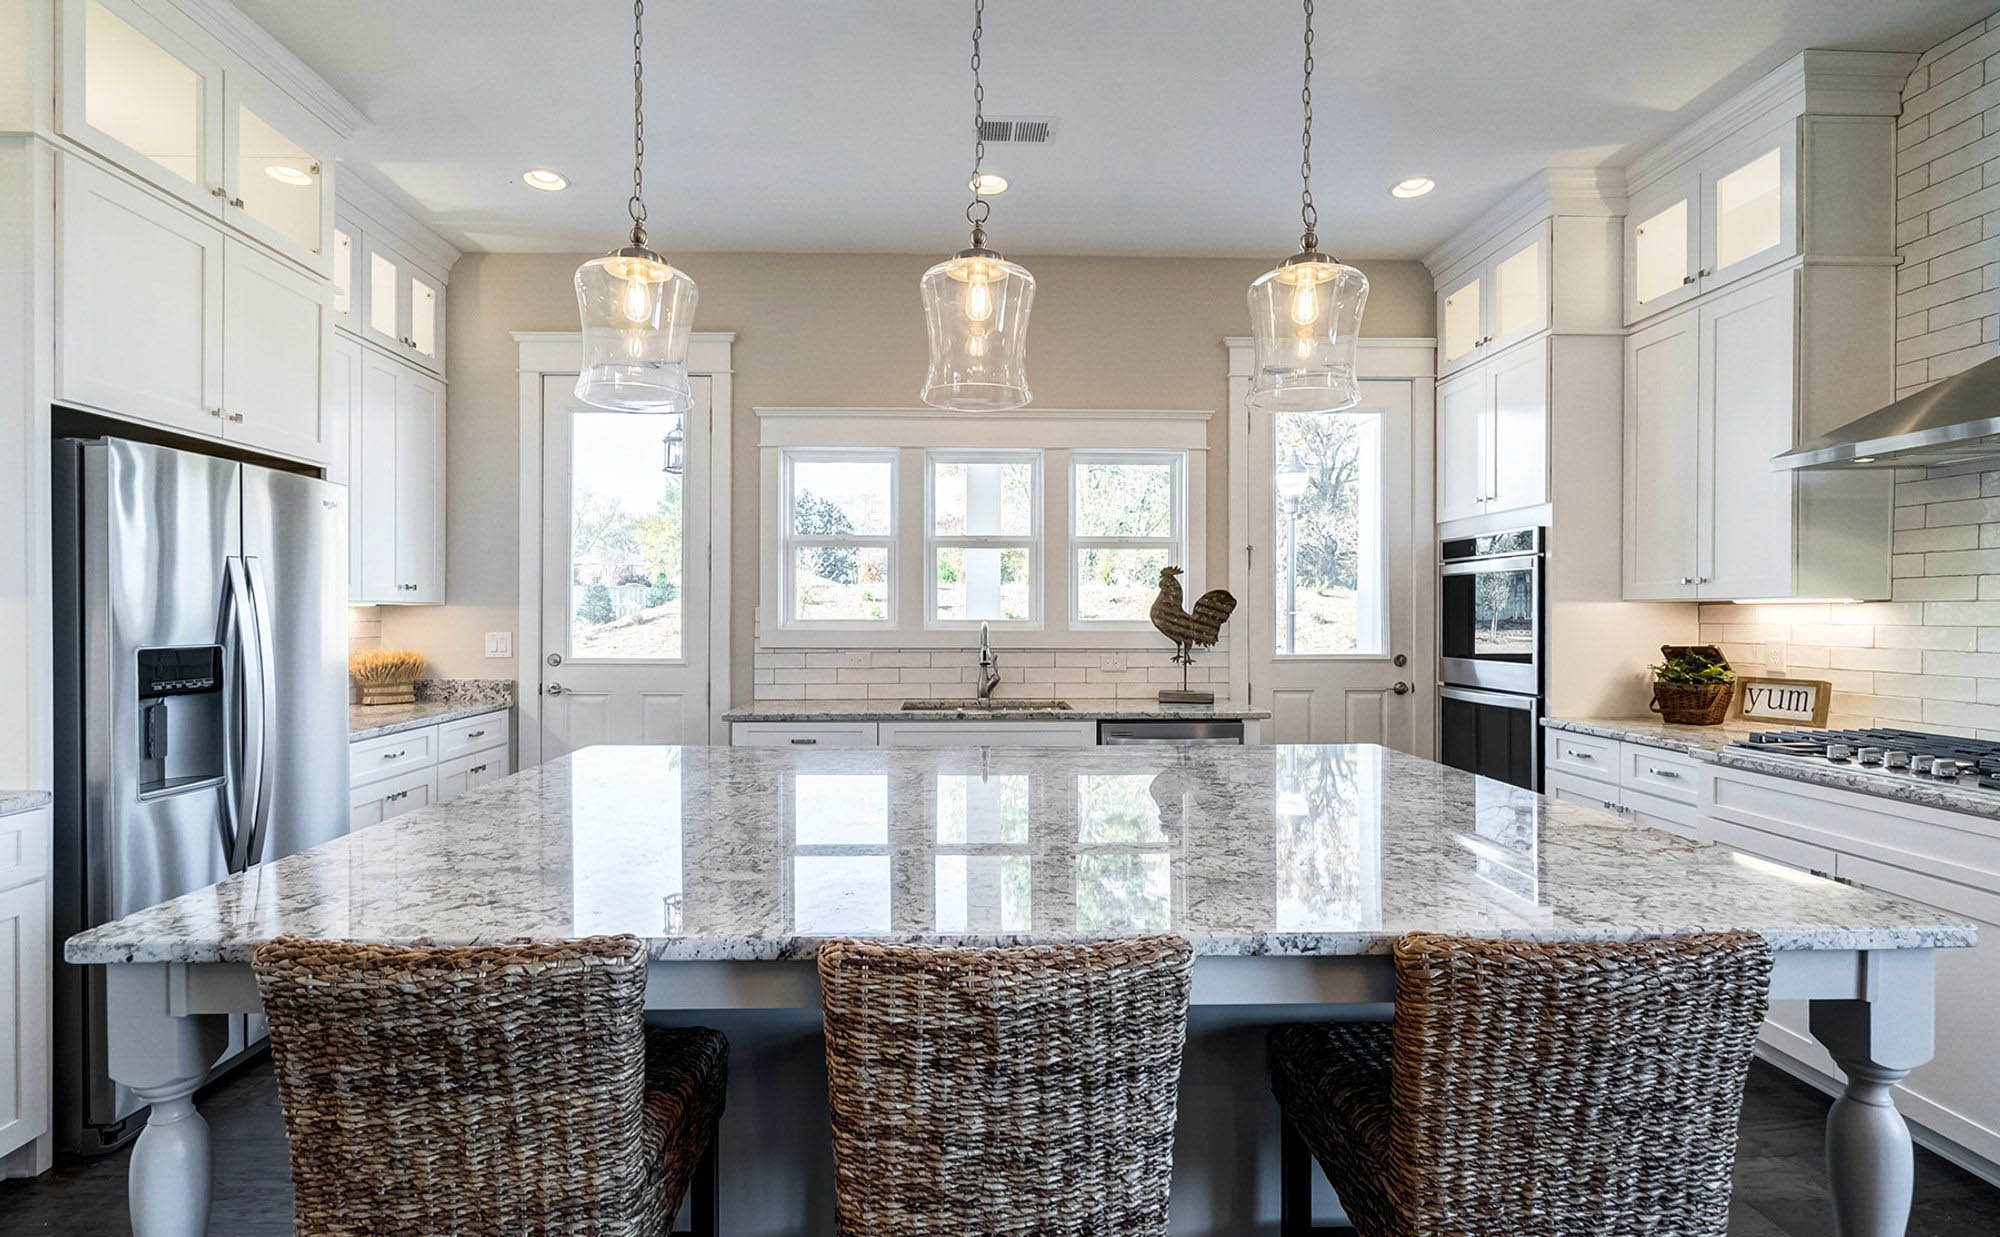 White granite kitchen countertop with brown  and gold. Large center island with wicker seating.